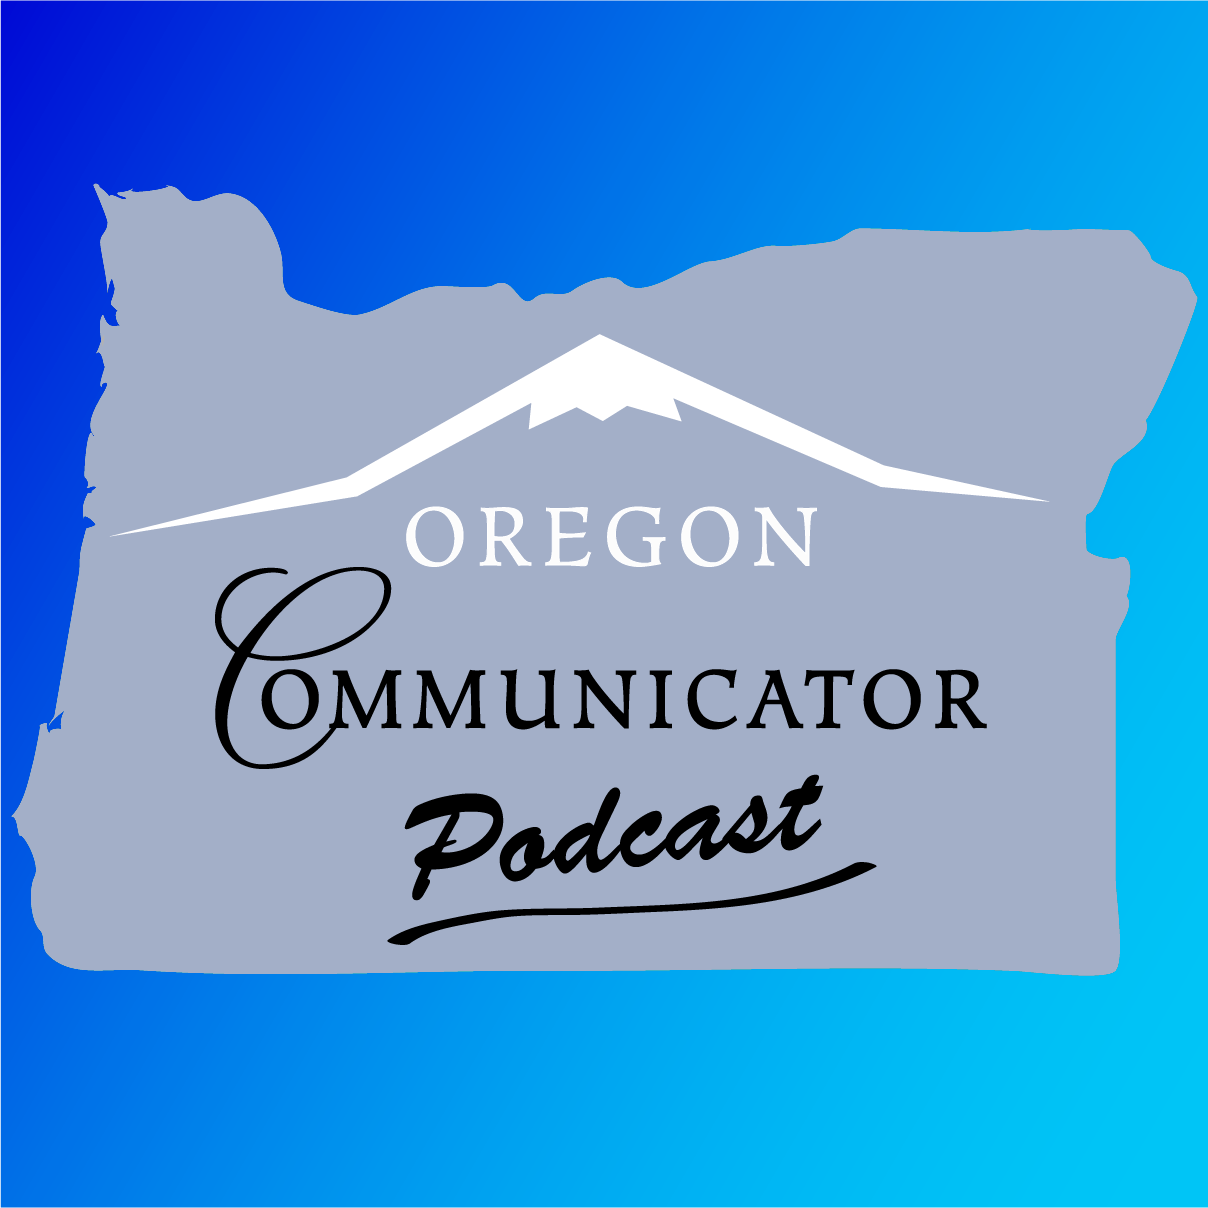 Oregon Communicator Podcast Logo